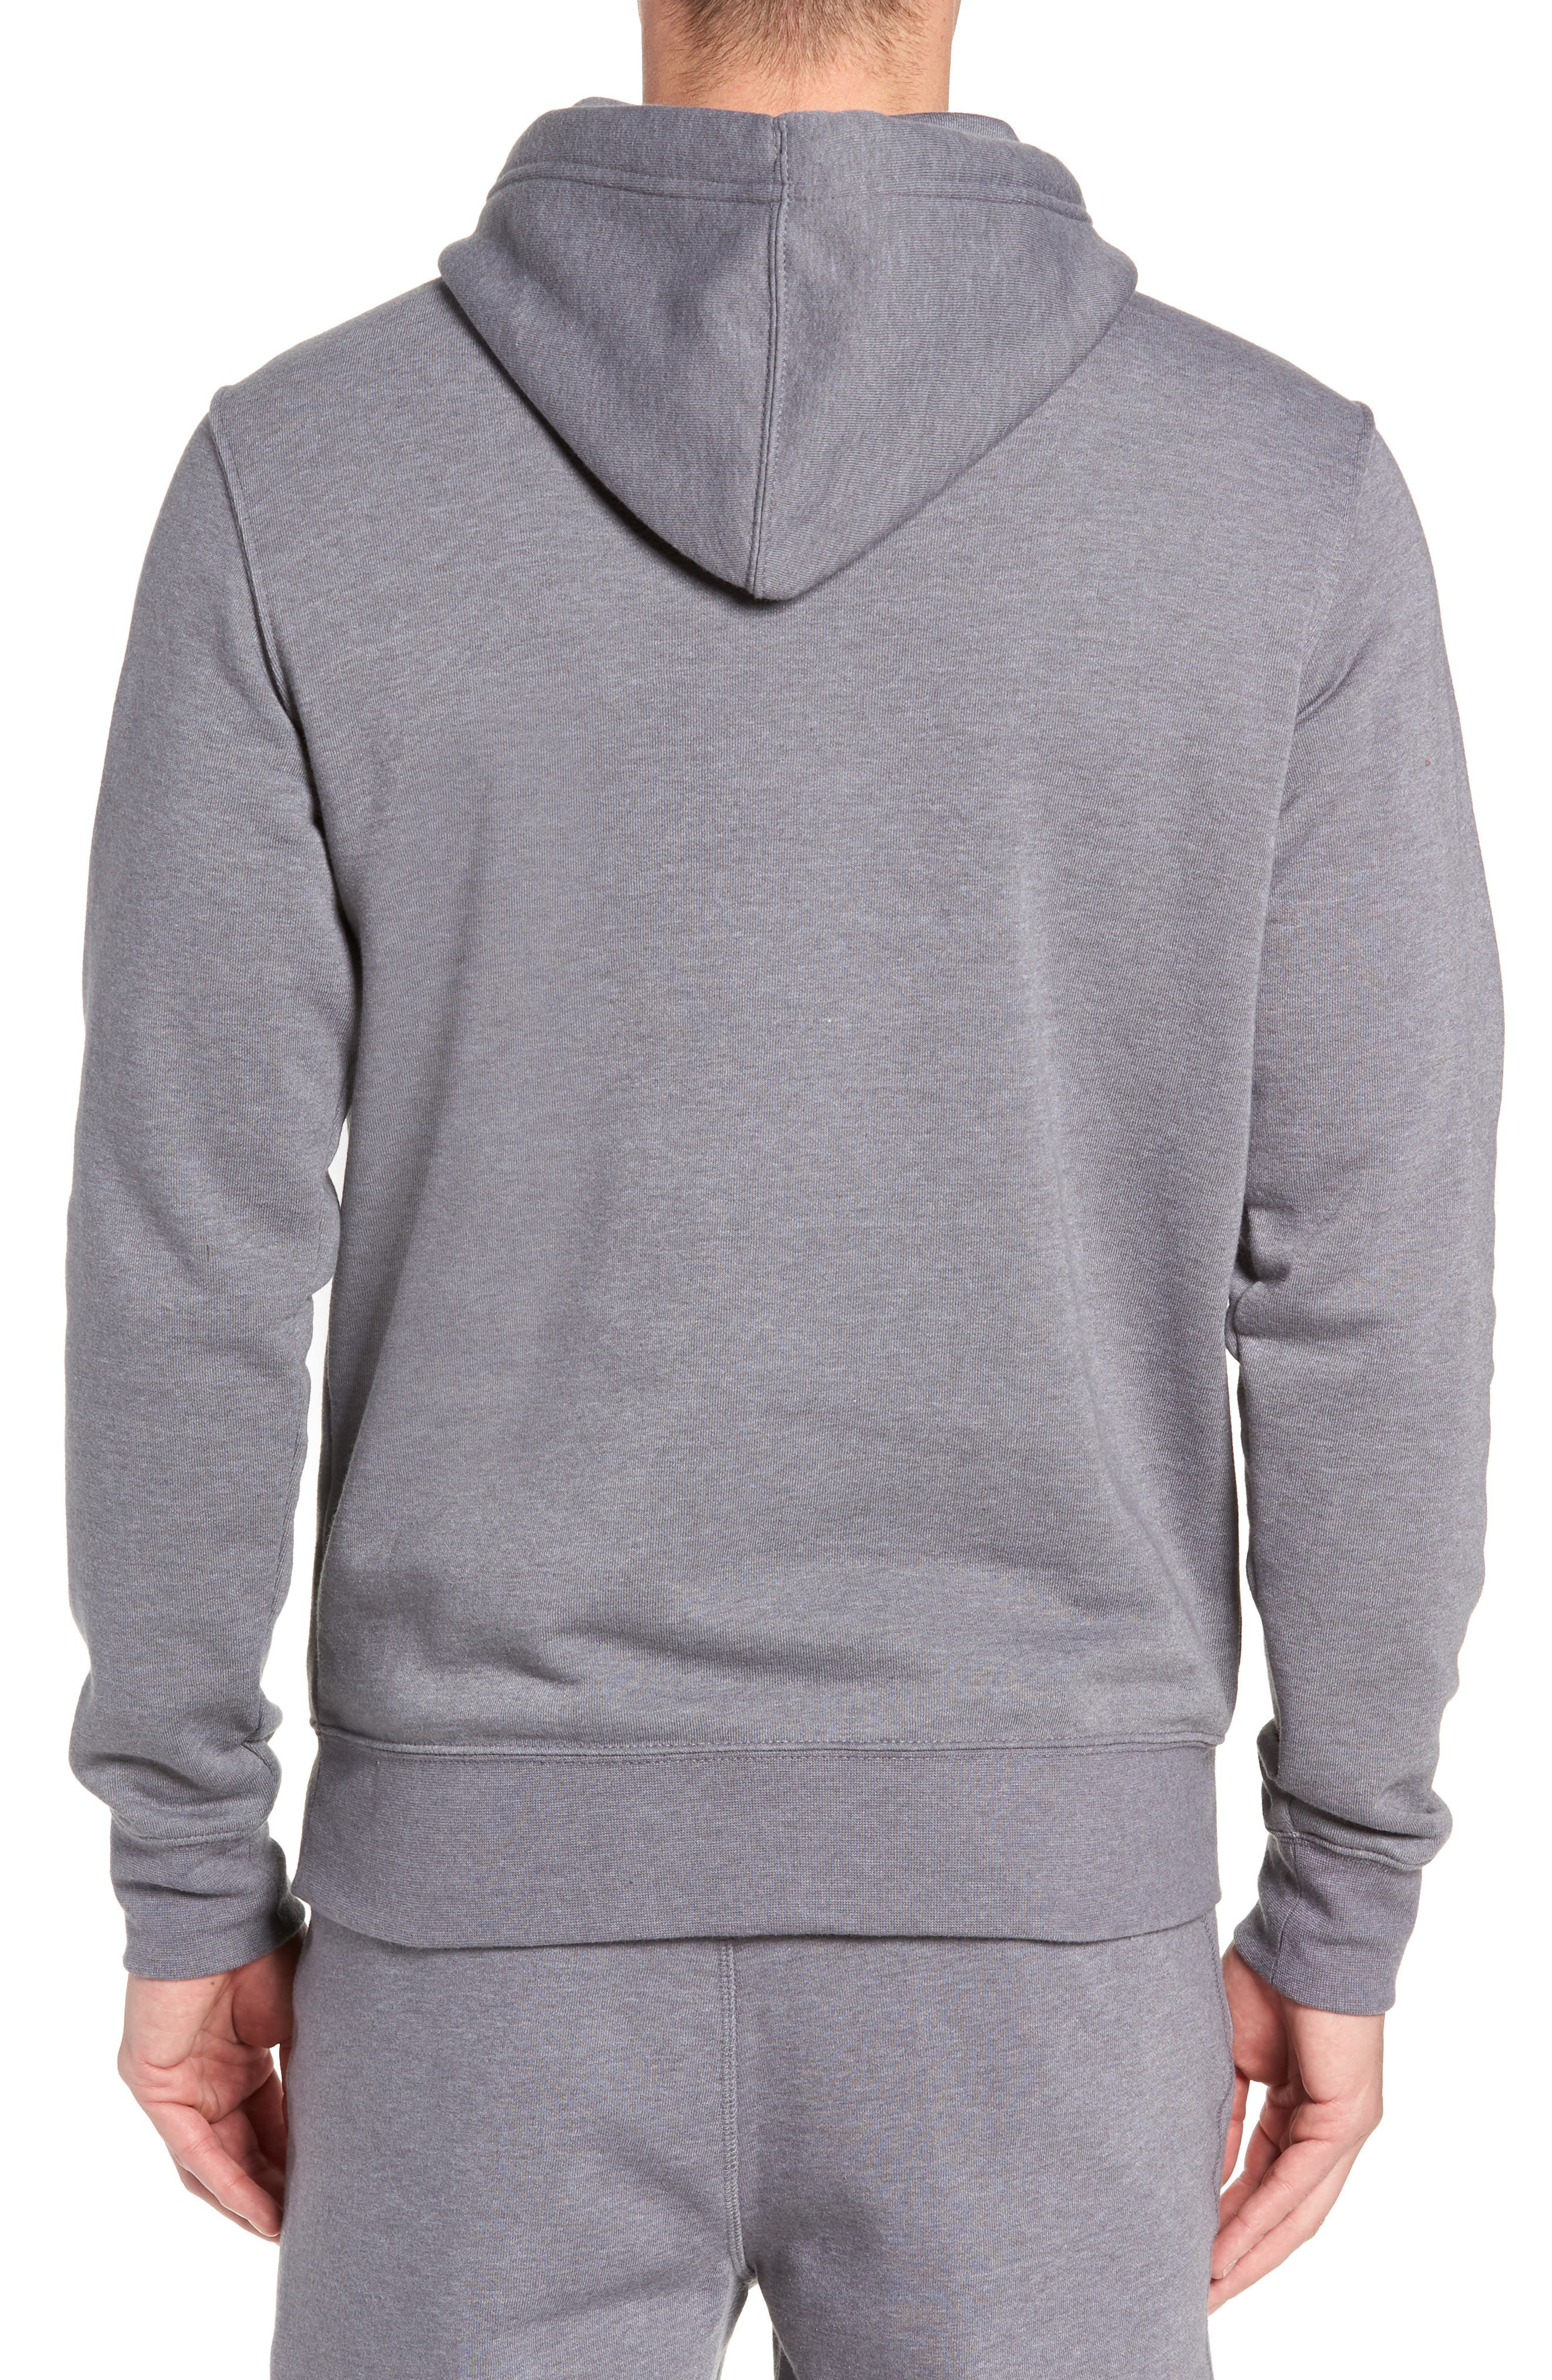 North Face Logo Patch Pullover Hoodie,                             Alternate thumbnail 2, color,                             TNF MEDIUM GREY HEATHER